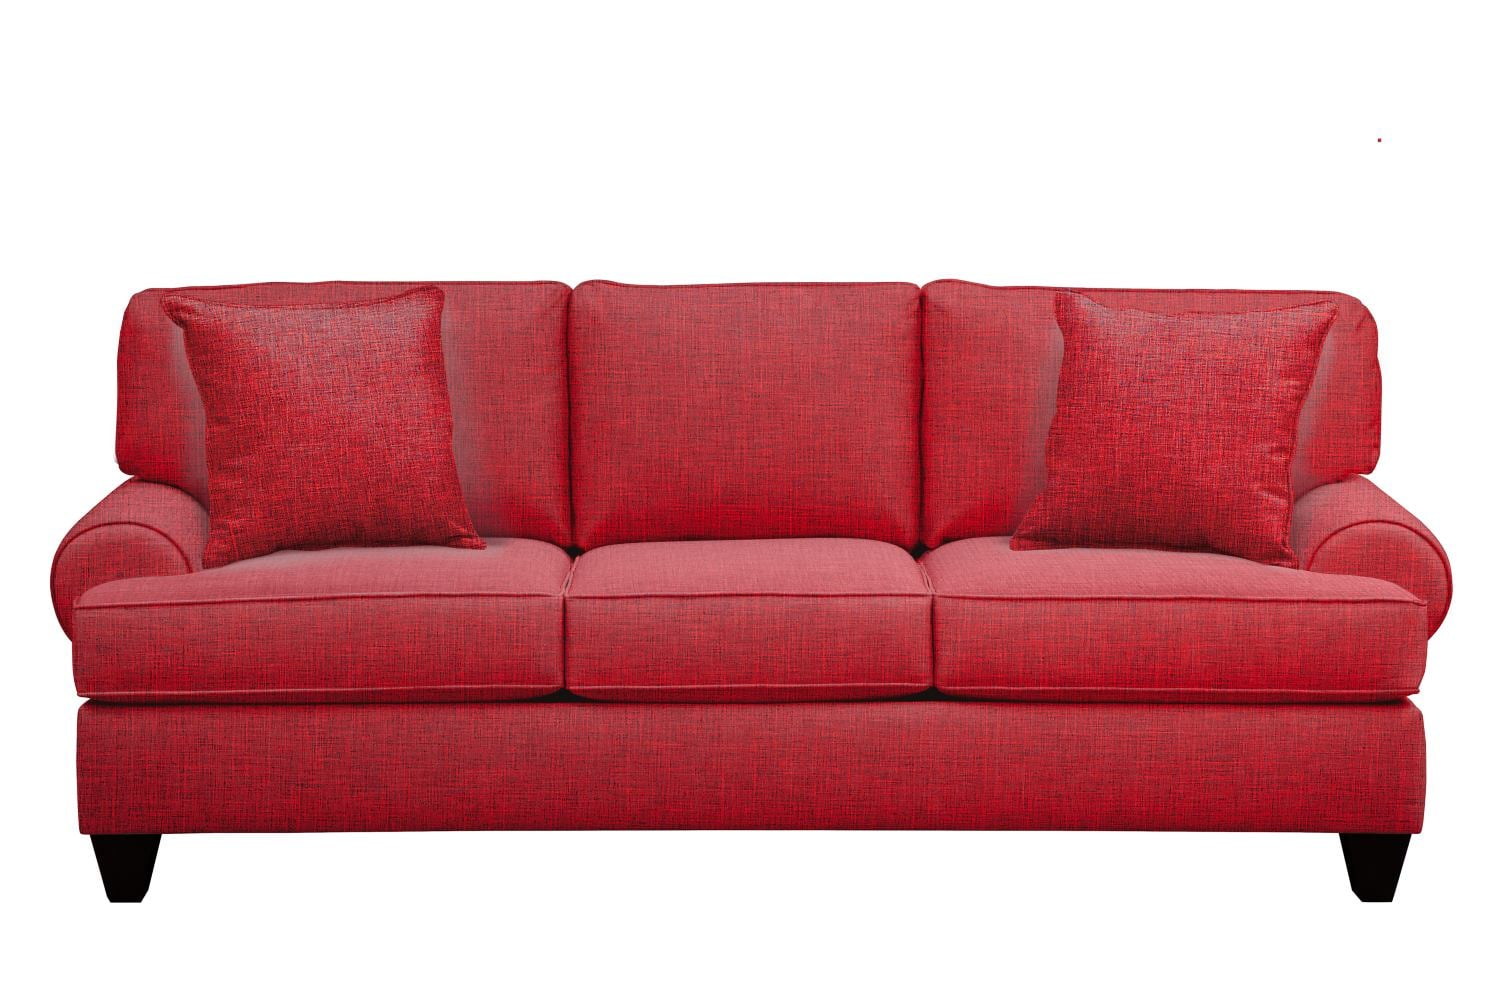 "Living Room Furniture - Bailey Roll Arm Sofa 91"" Milford II Red w/ Milford II Red  Pillow"